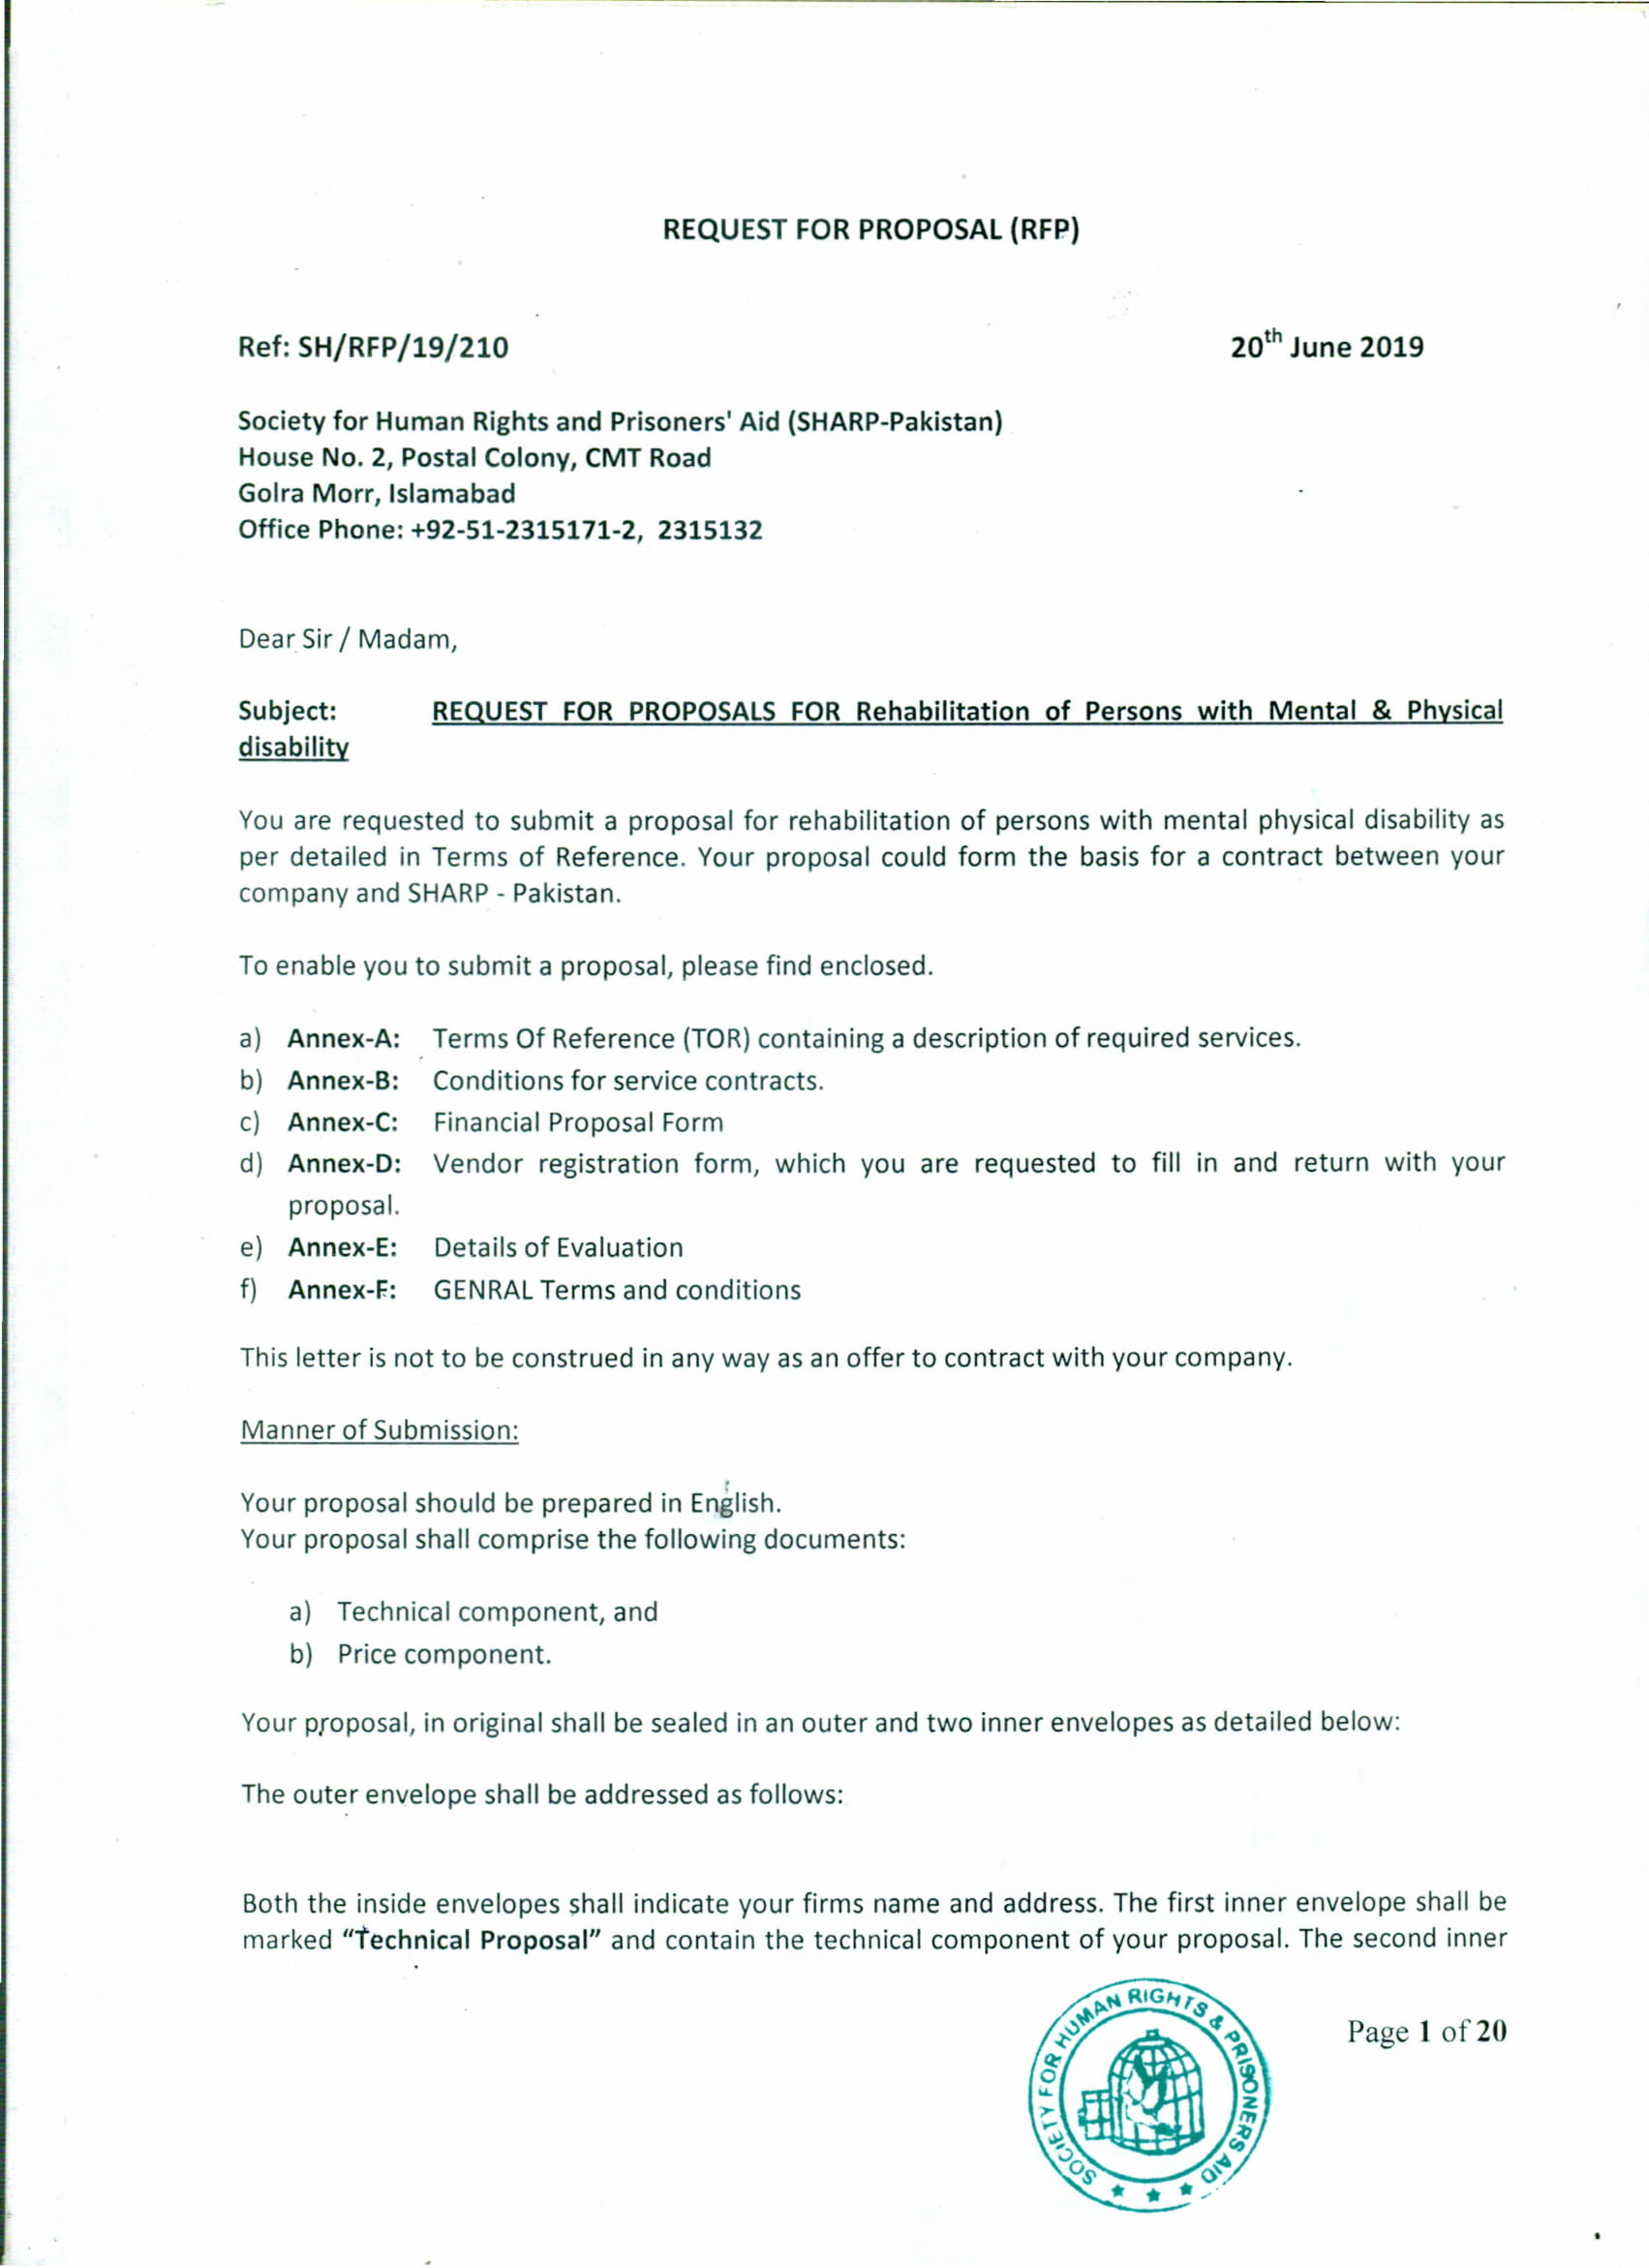 Request for Proposal for Rehabilitation Services – Society